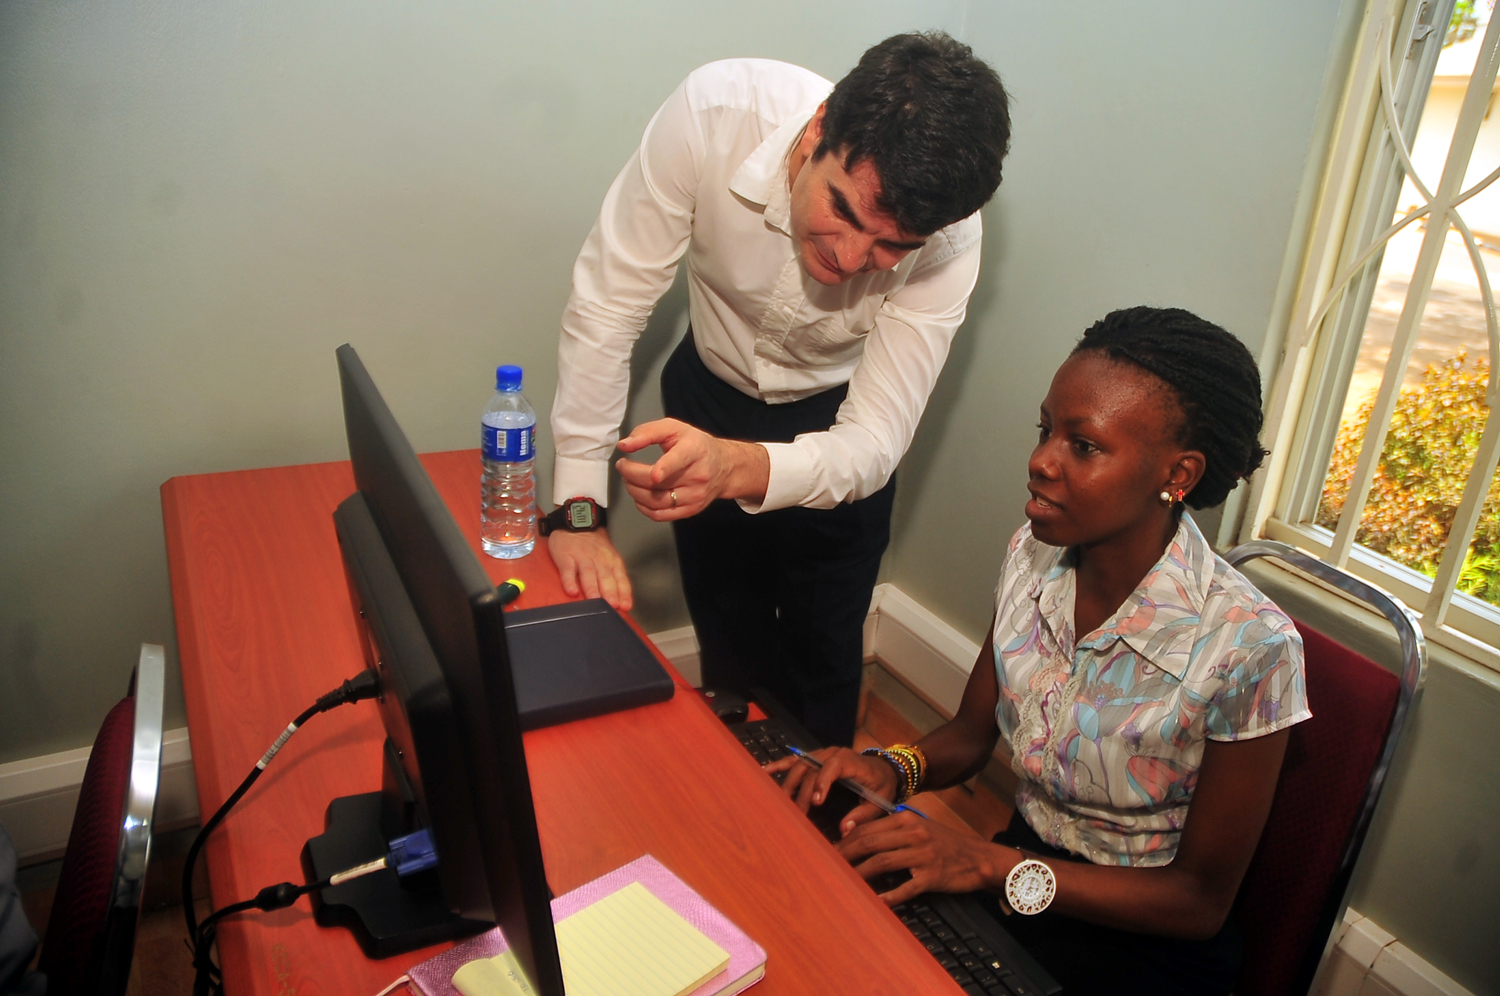 Consultant IOM Juan Cados de Cadiz (L) takes KCCA, employment service officer M.s Lucia Khasalamwa (R) during the training at KCCA office in Kampala February 24, 2015 (PHOTO: STEPHEN WANDERA)